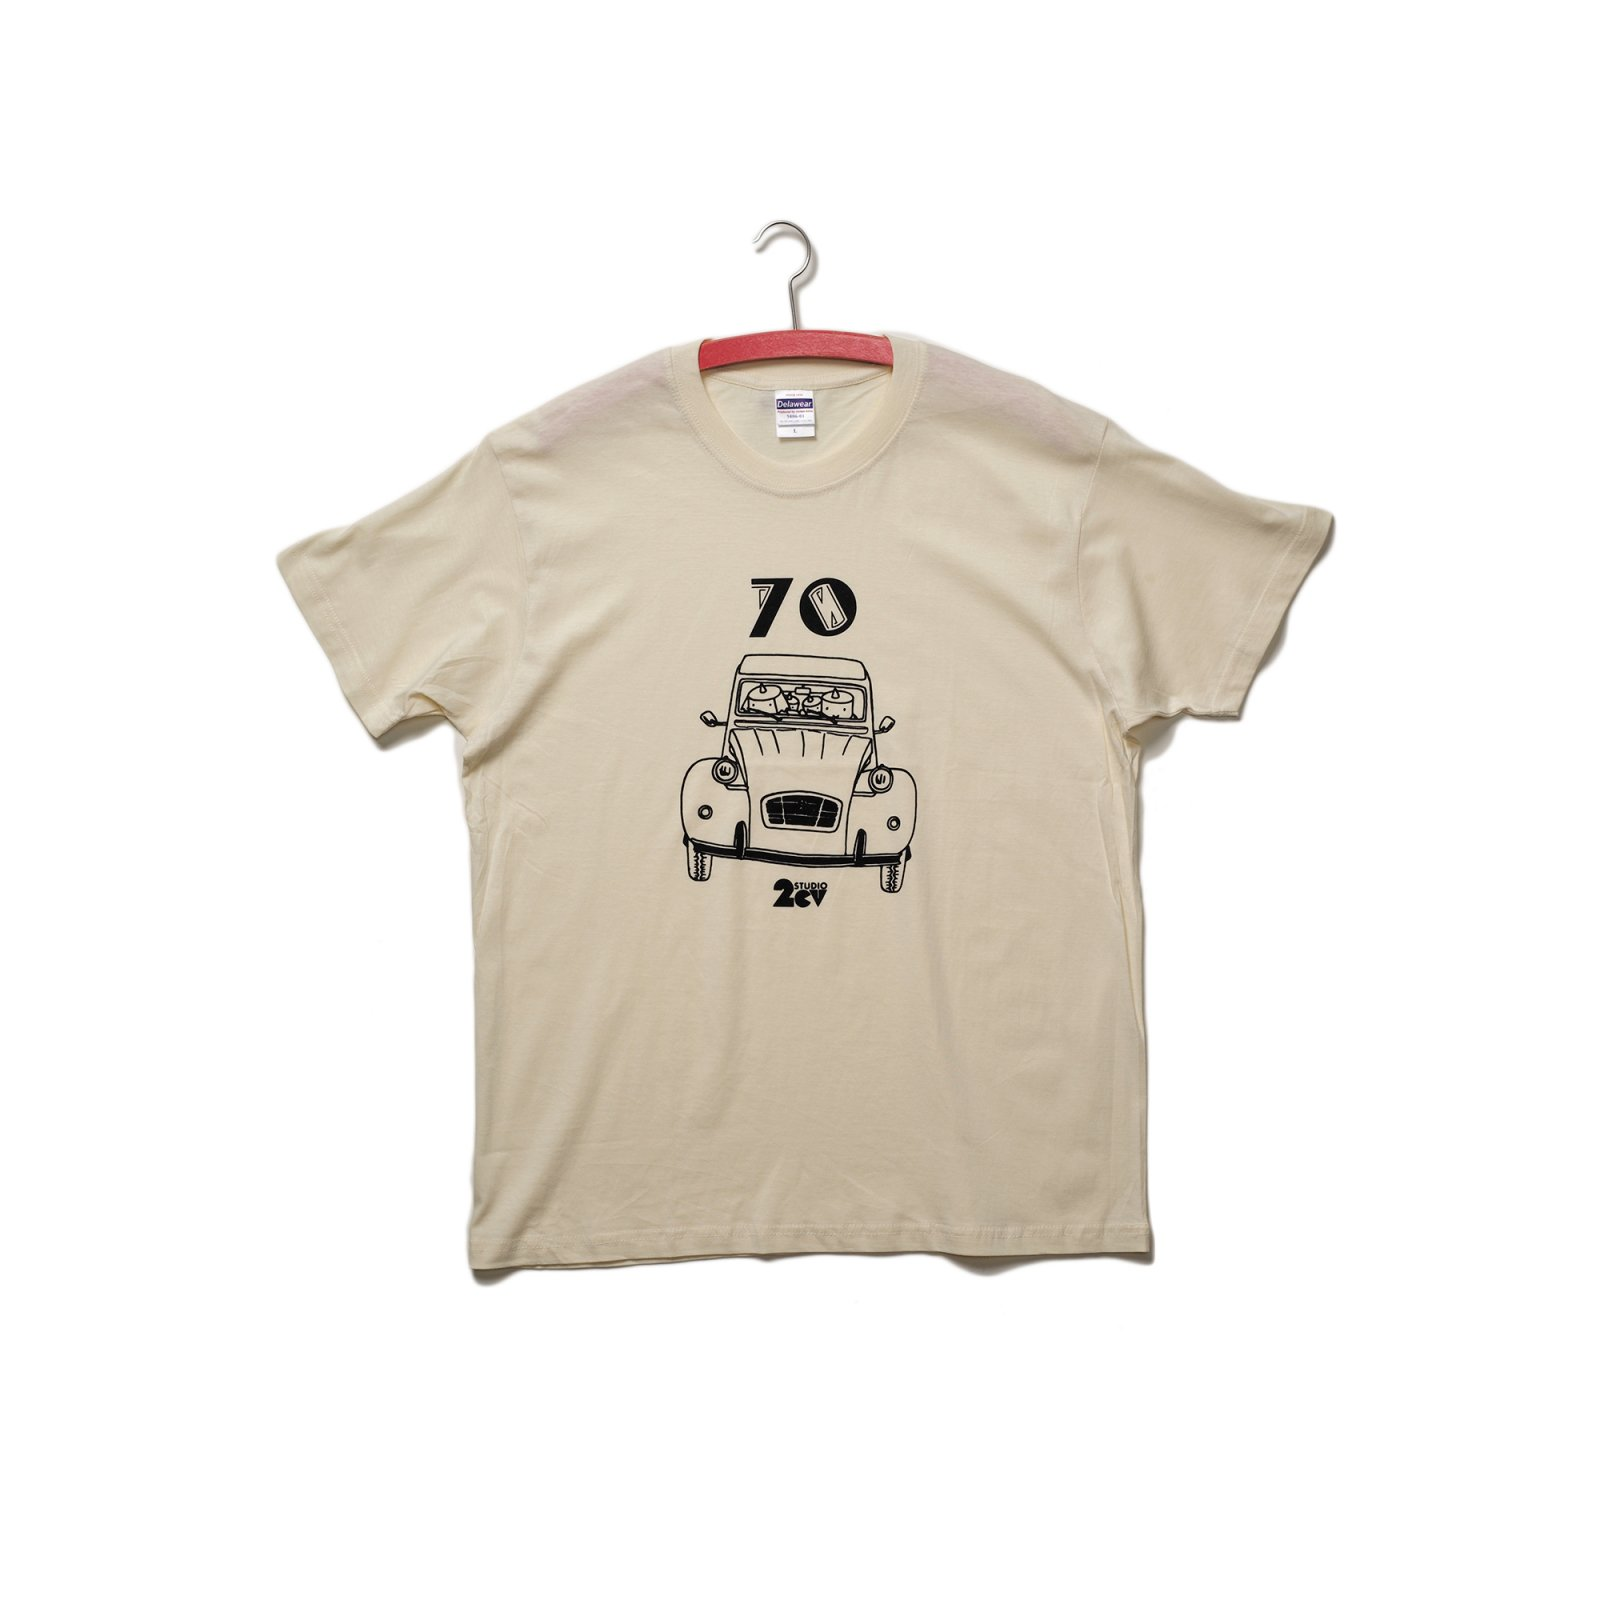 <img class='new_mark_img1' src='https://img.shop-pro.jp/img/new/icons43.gif' style='border:none;display:inline;margin:0px;padding:0px;width:auto;' />2CV 70 T-shirt (natural)